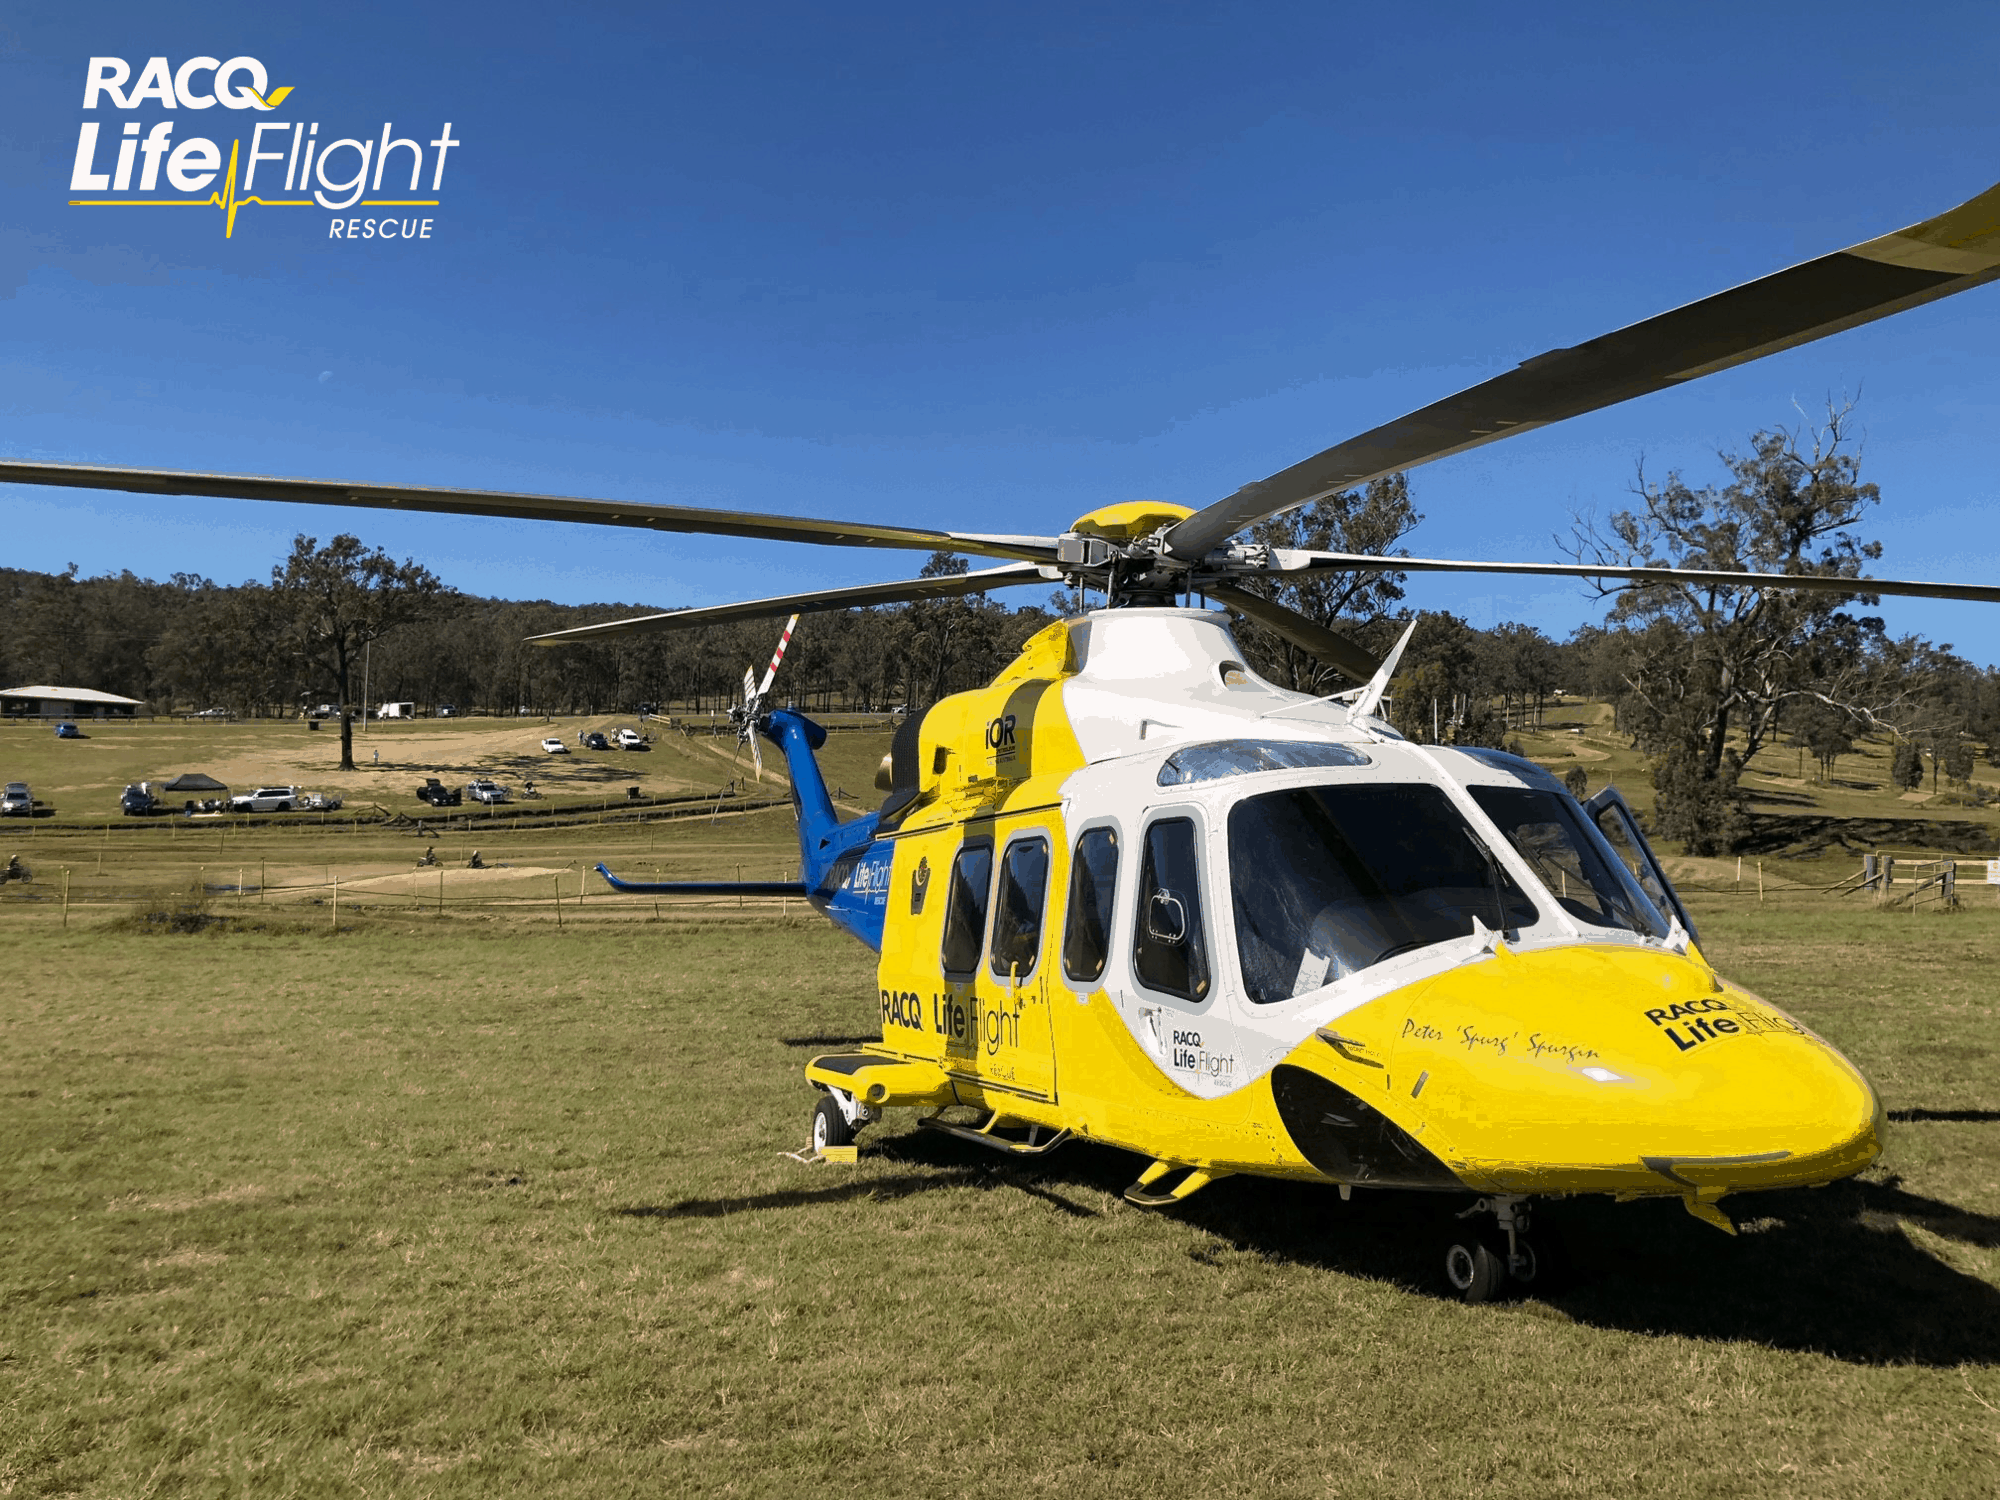 RACQ LifeFlight Rescue airlifts two injured riders from motocross park